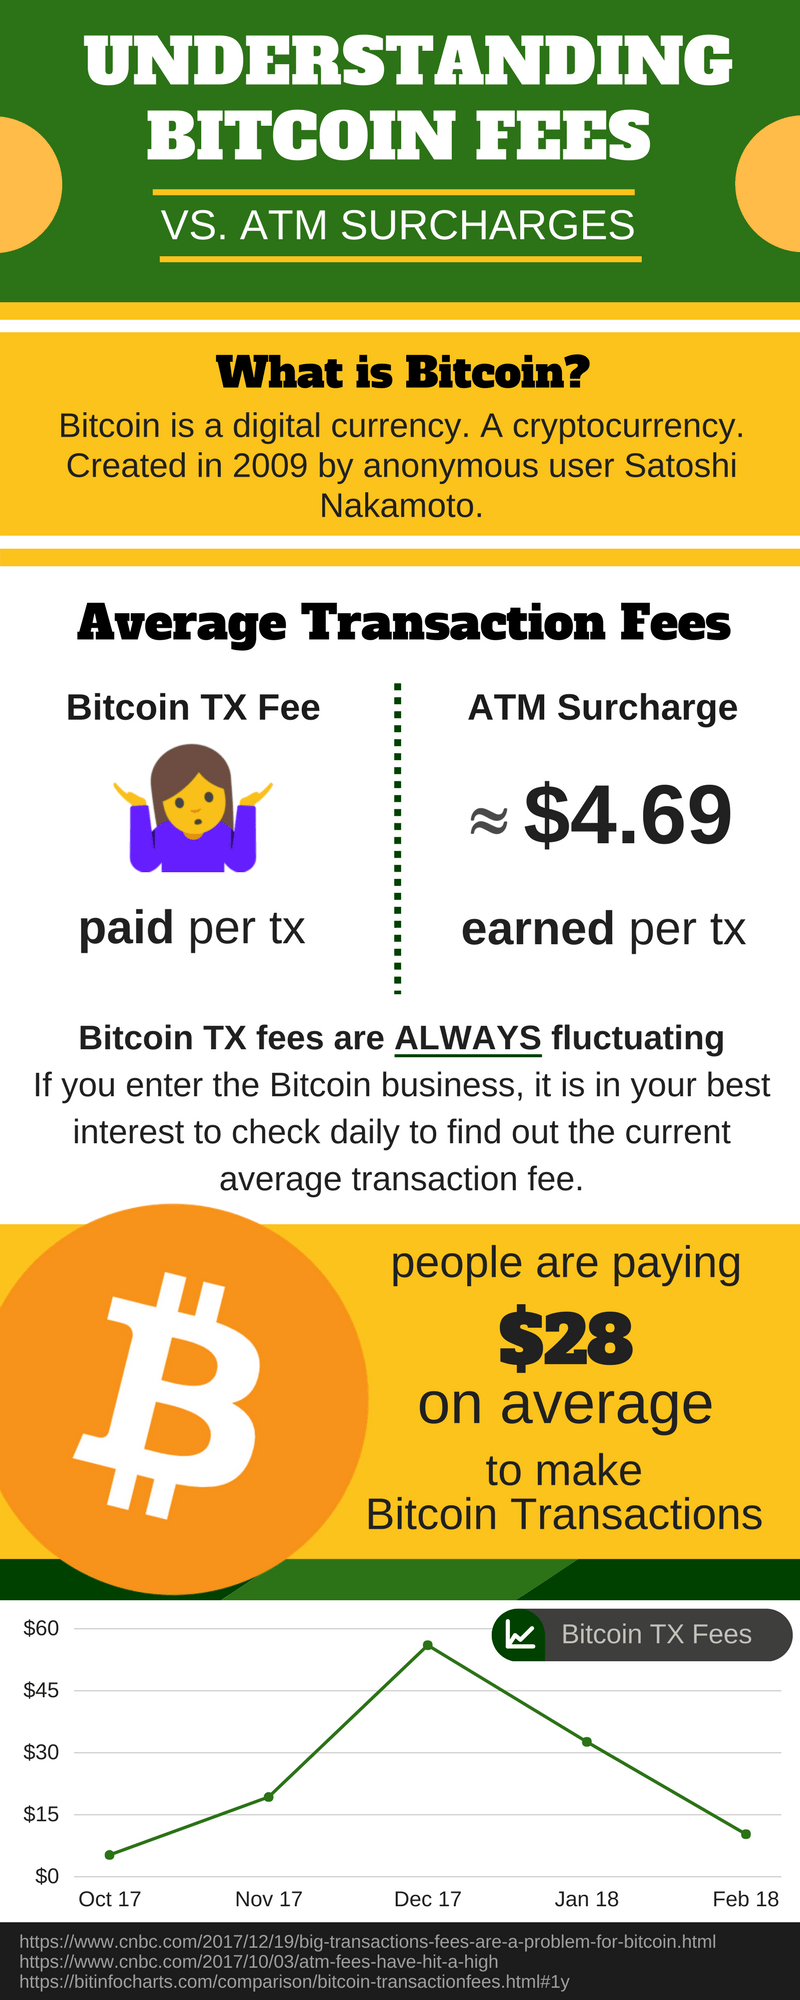 Bitcoin Business vs ATM Business Fees